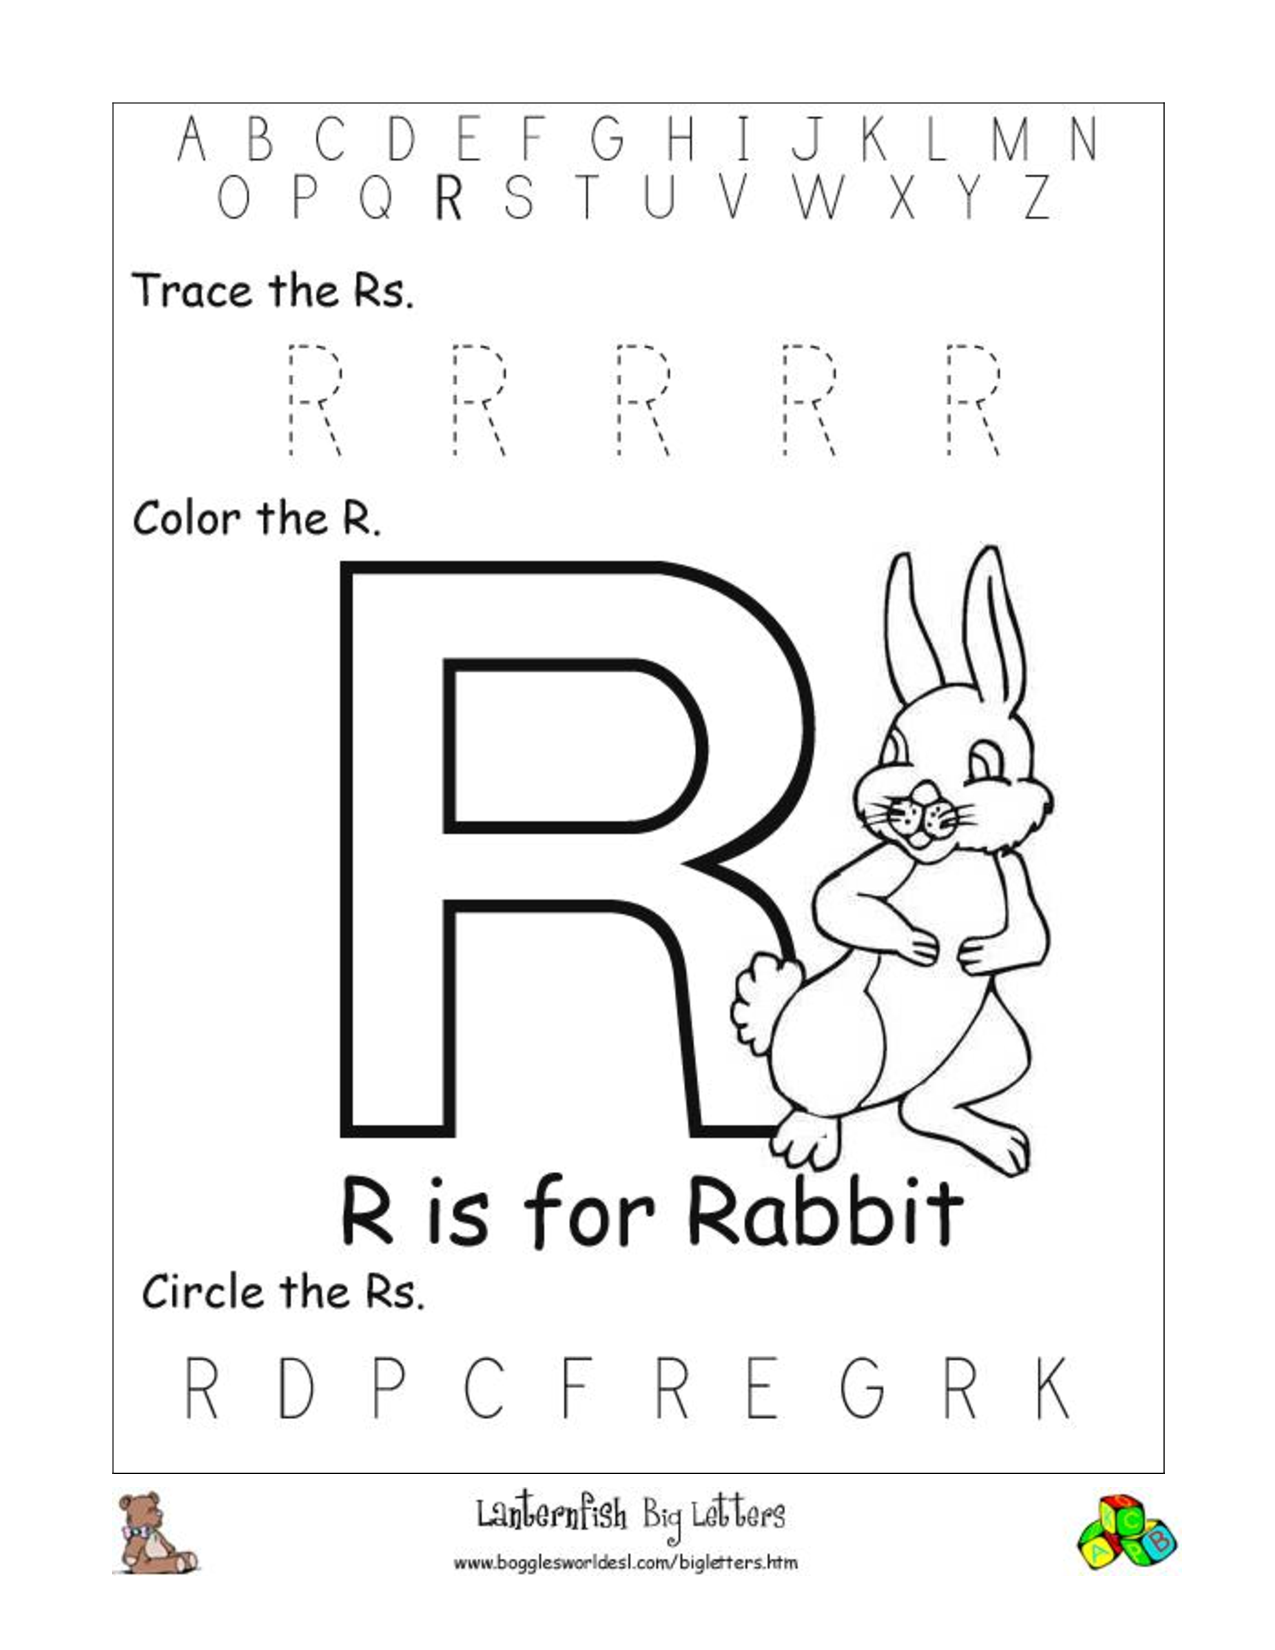 Alphabet Worksheets For Preschoolers | Alphabet Worksheet